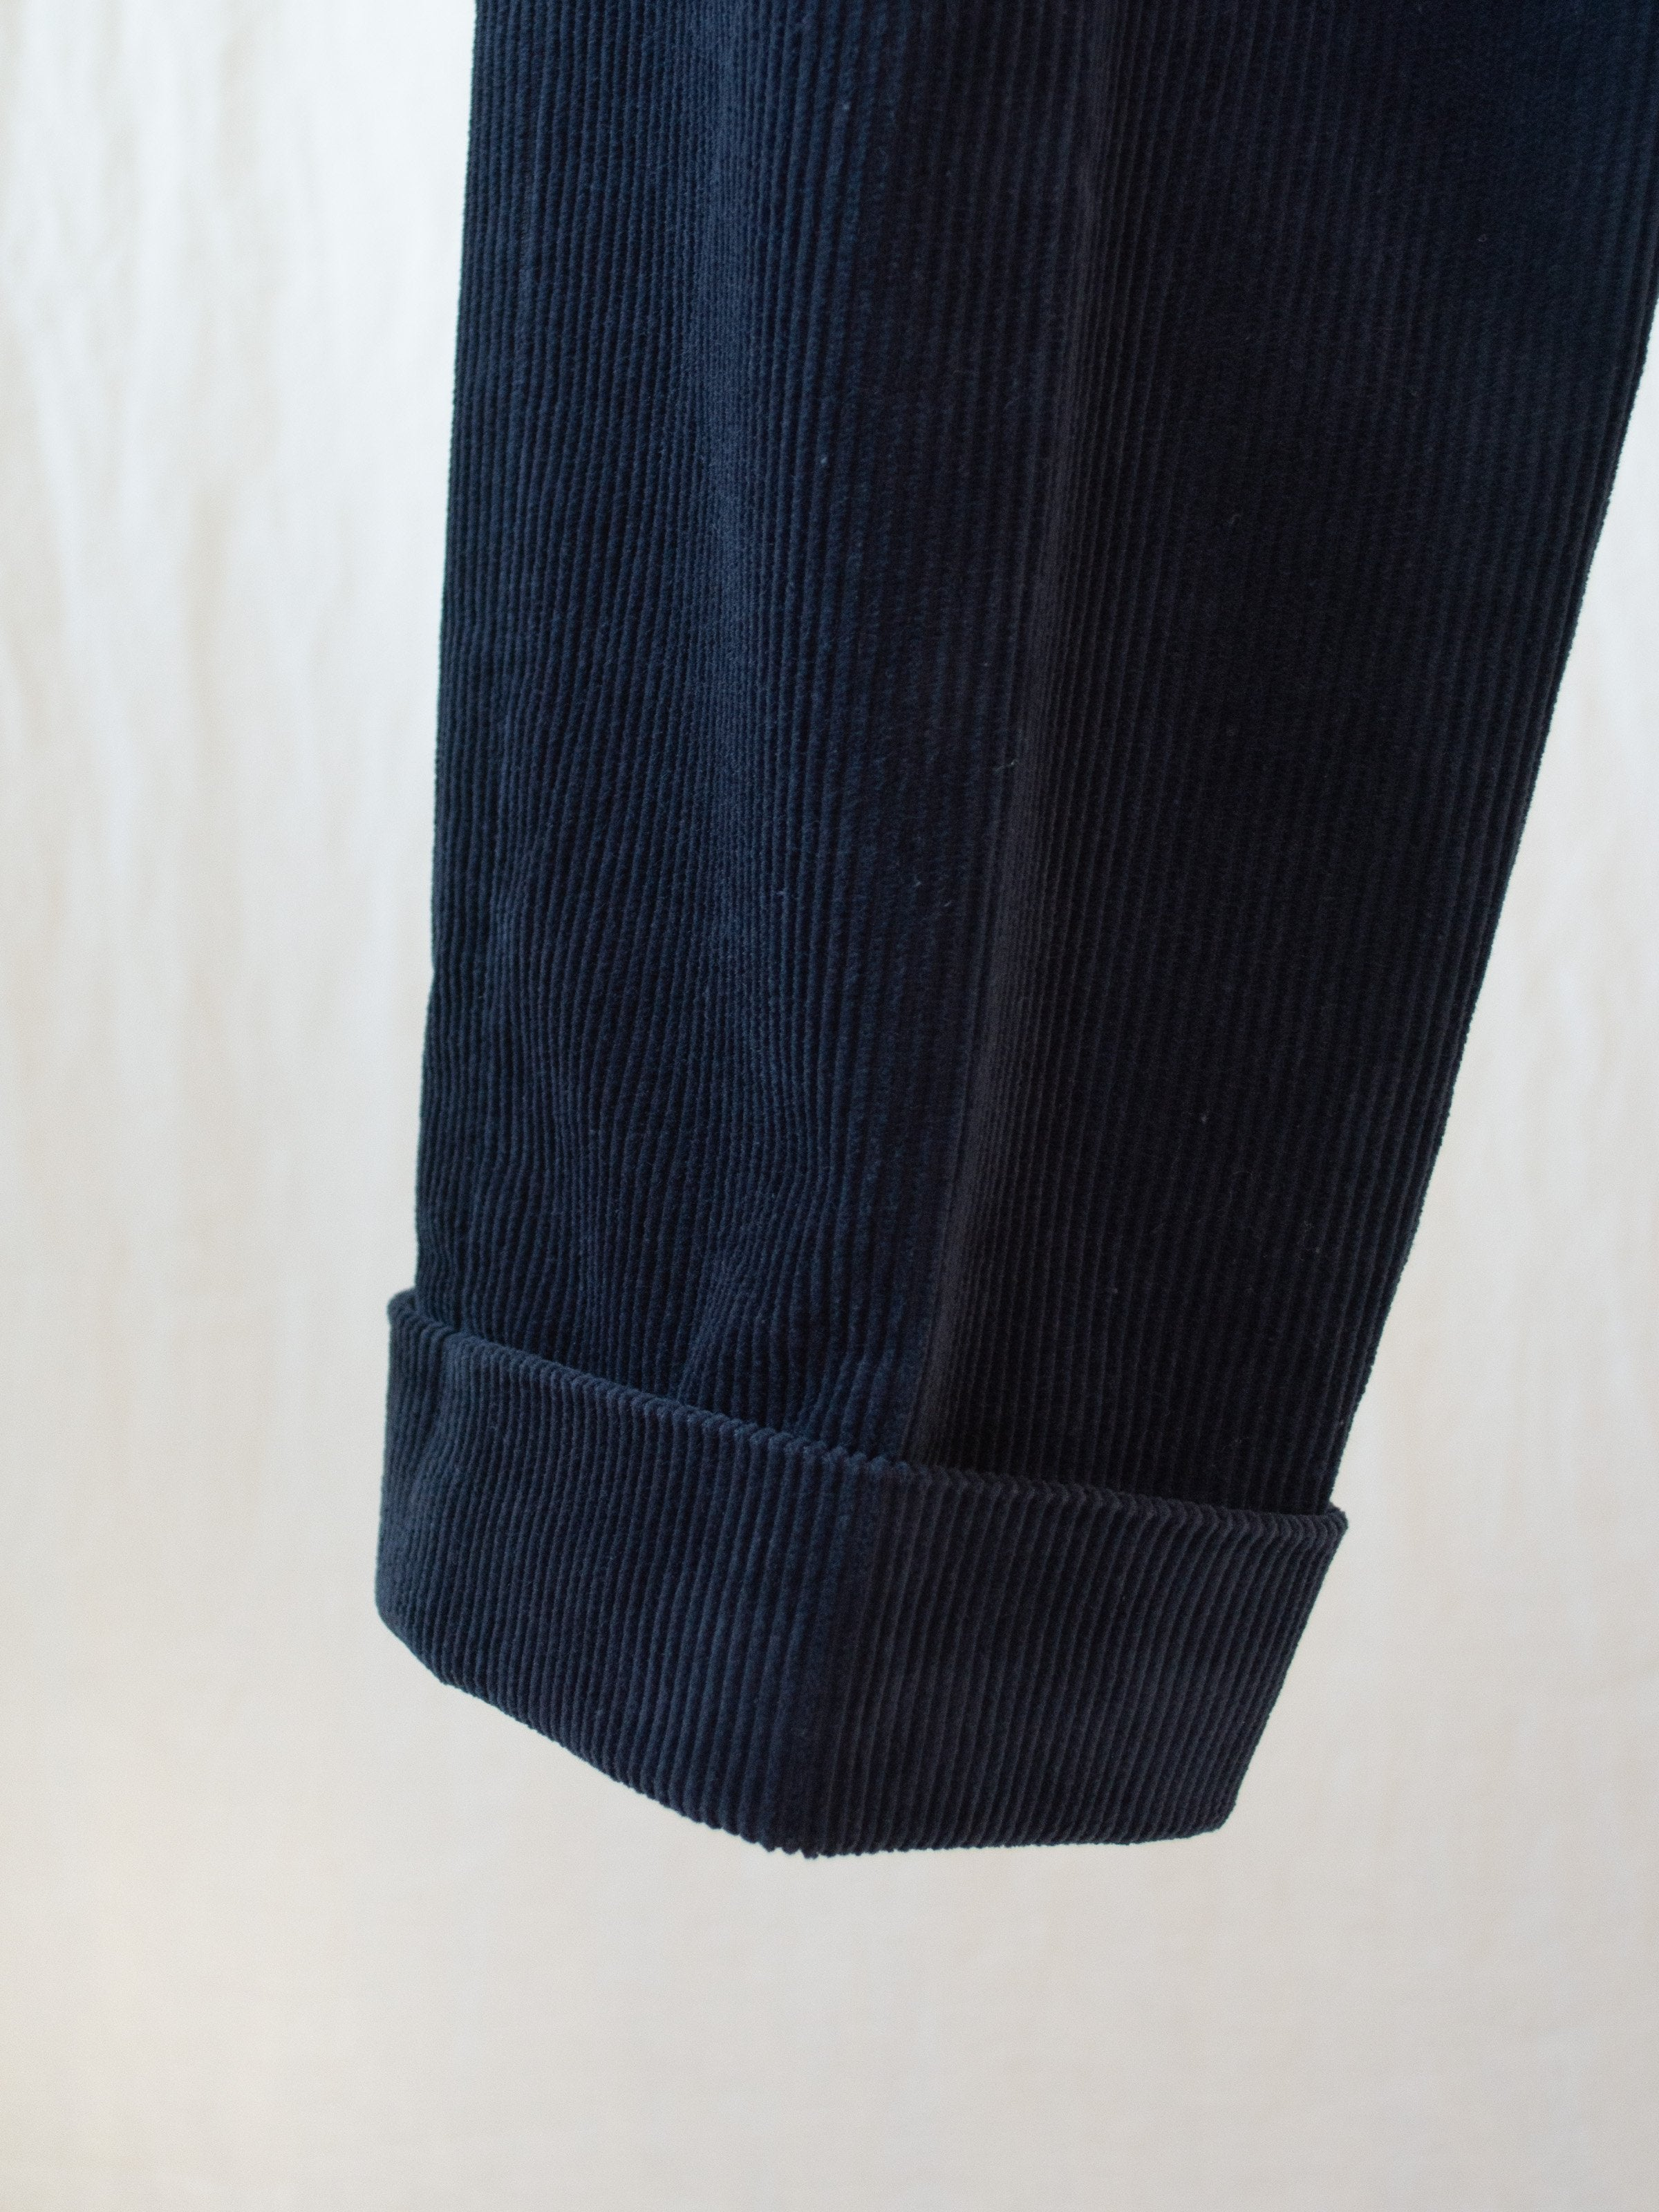 Namu Shop - Fujito Corduroy Wide Slacks - Navy